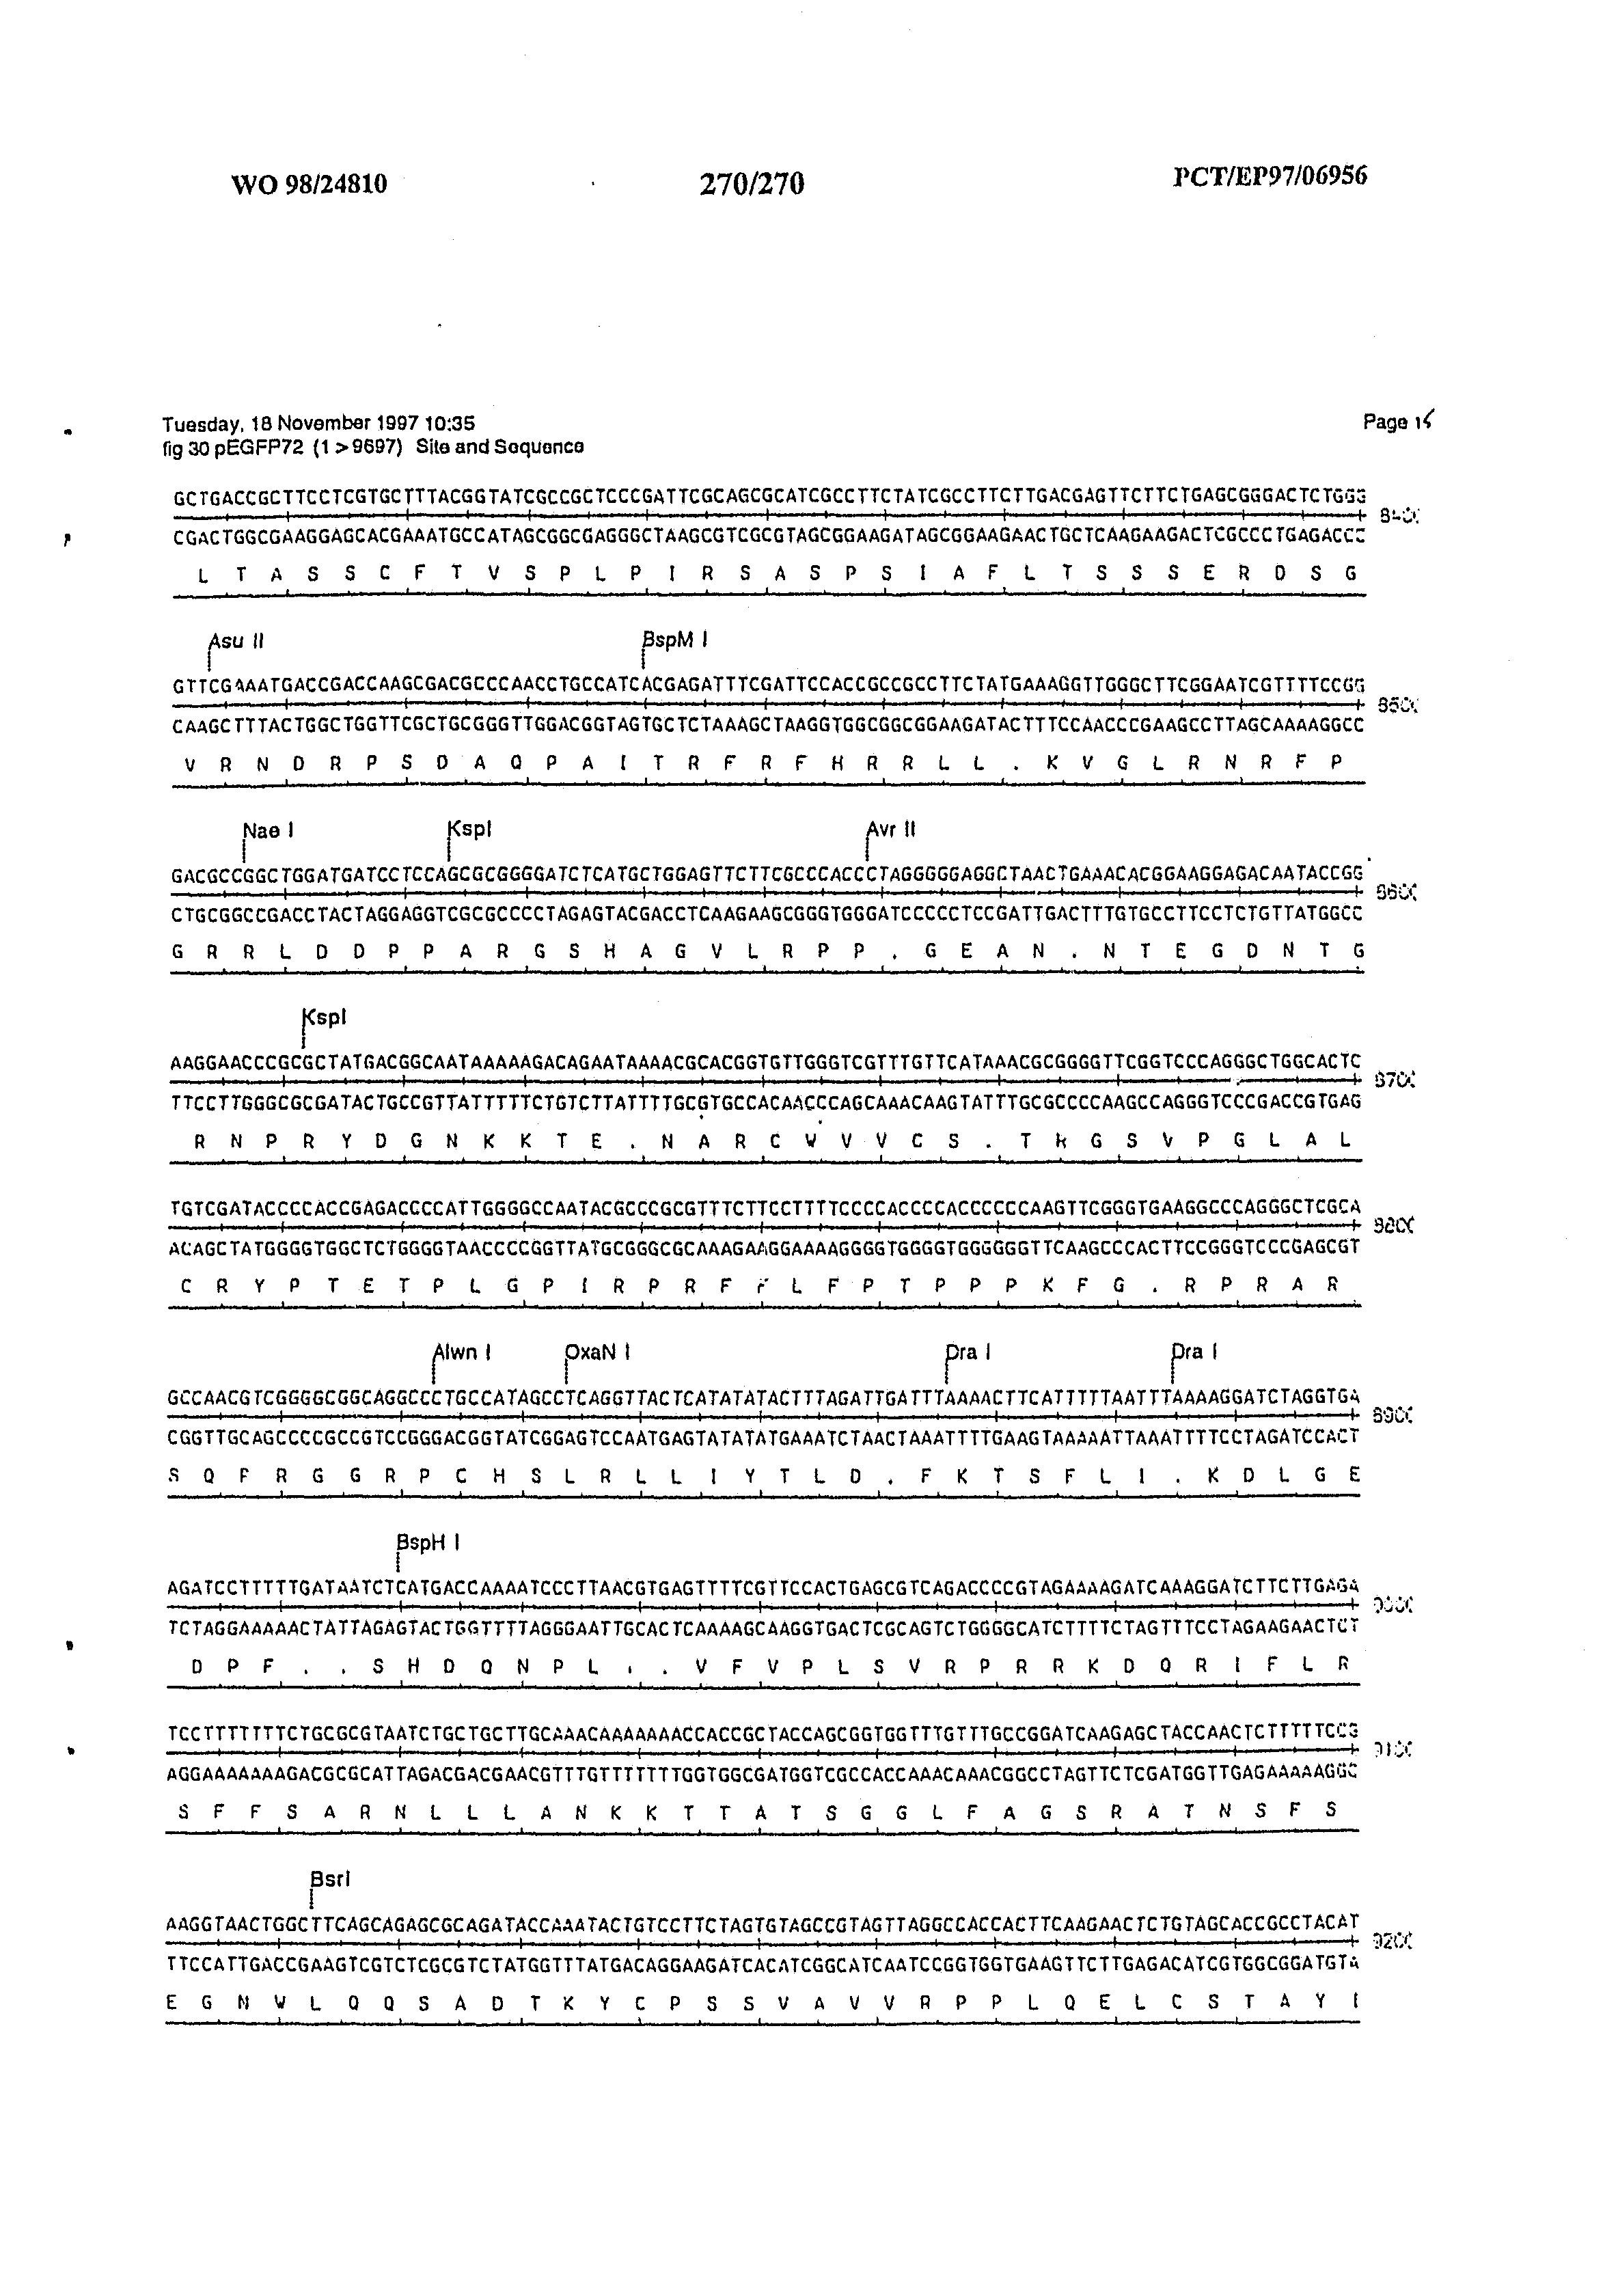 AU 1998/056622 A - Vertebrate Homologues Of Unc-53 Protein Of C